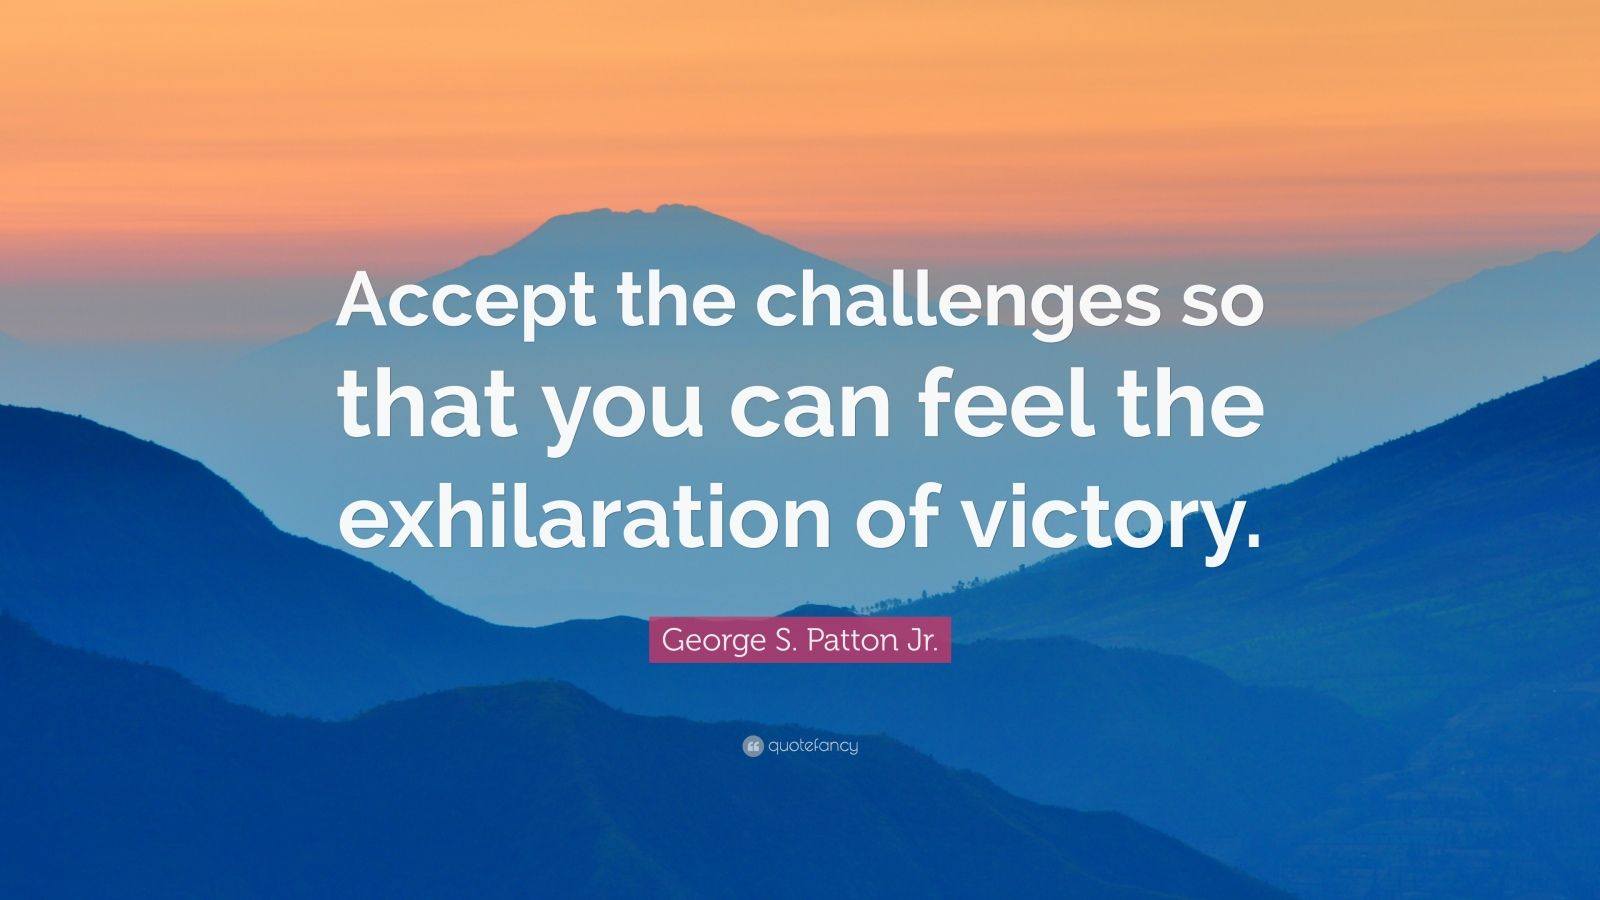 Inspirational Quotes On Life Challenges Wallpapers George S Patton Jr Quote Accept The Challenges So That